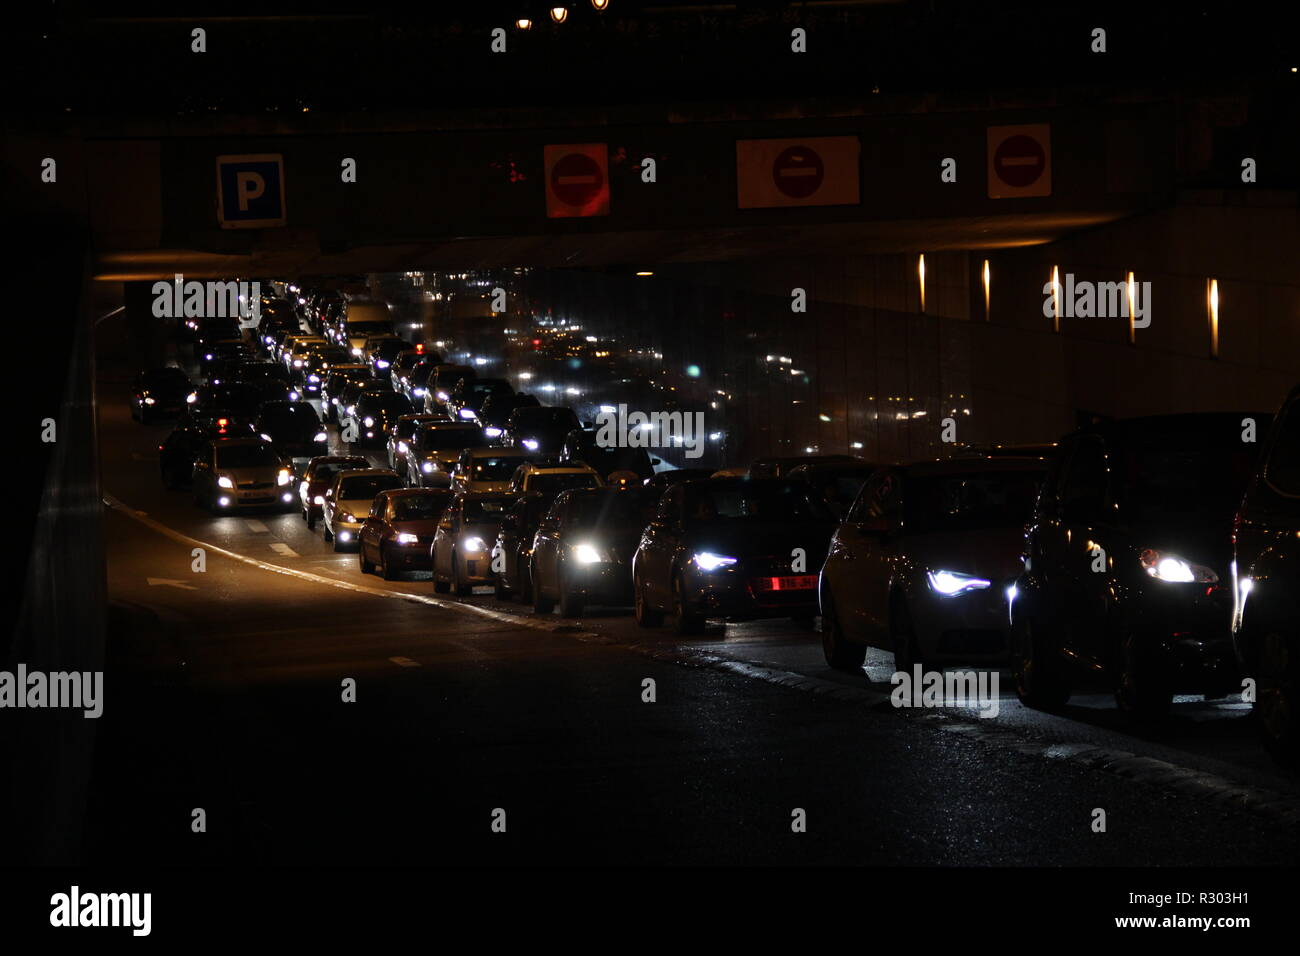 Automobiles in the tunnel by night in Paris. - Stock Image